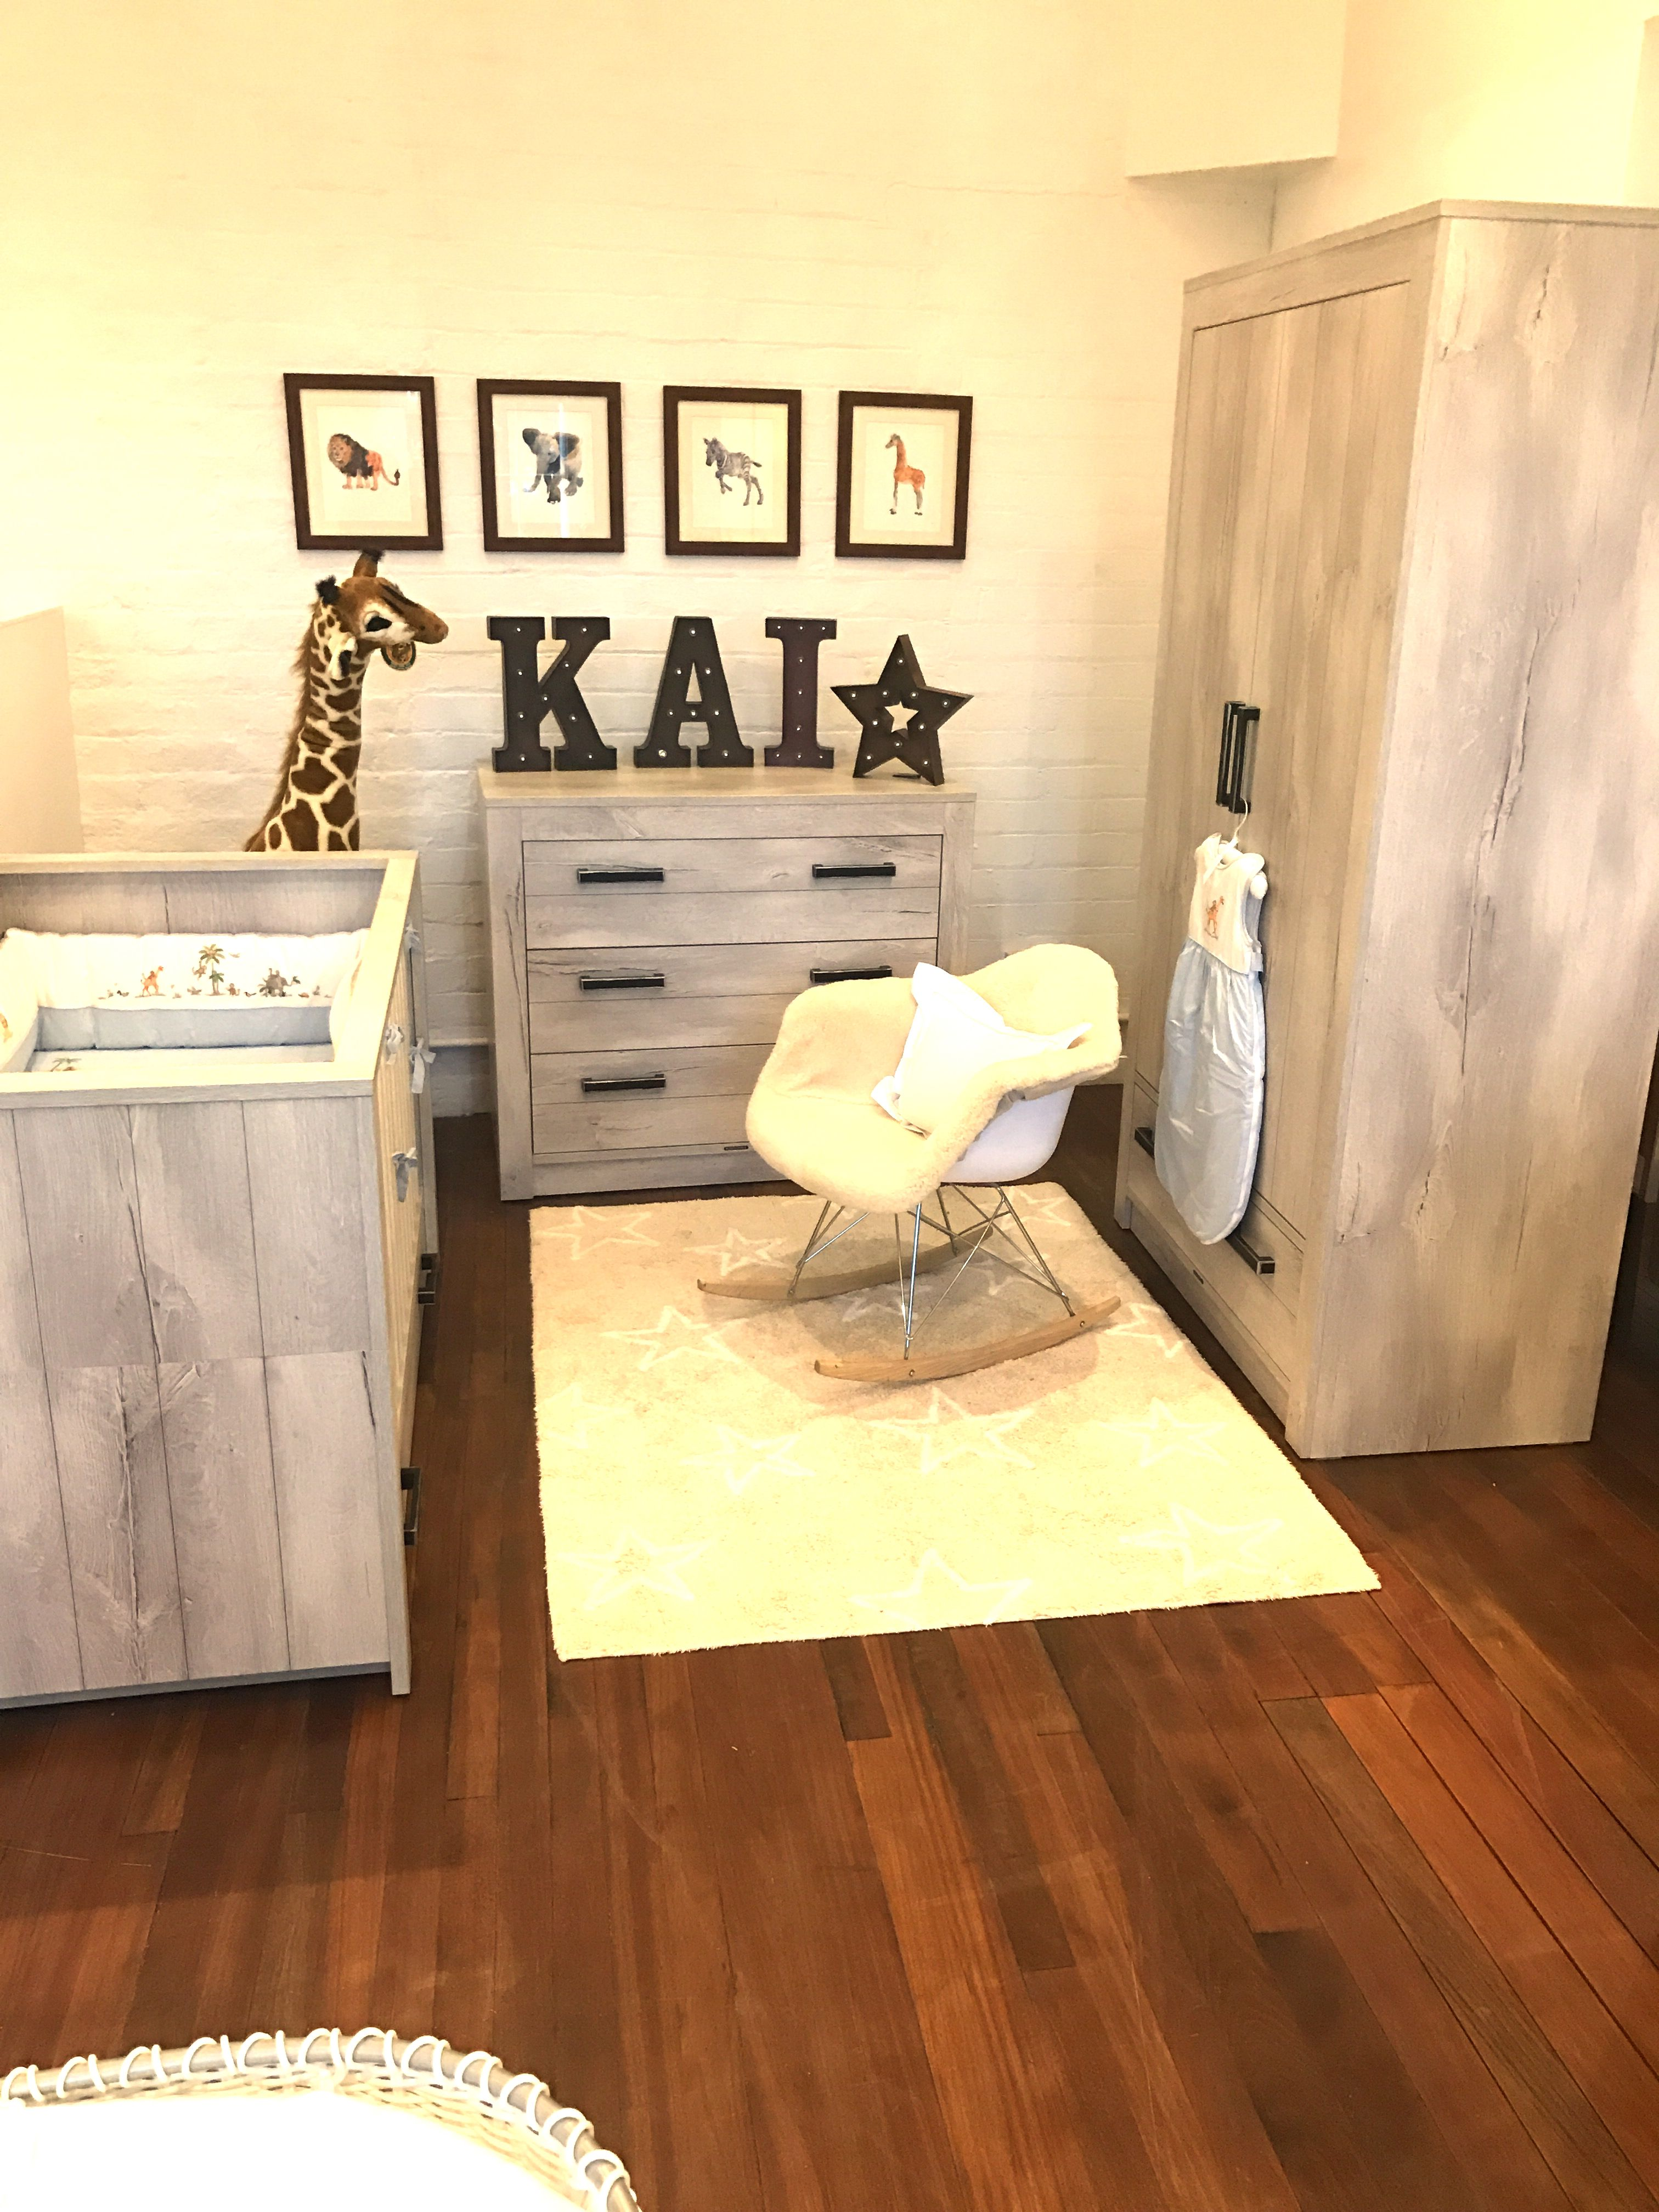 Fjord nursery furniture by Kidsmill with a safari theme on display